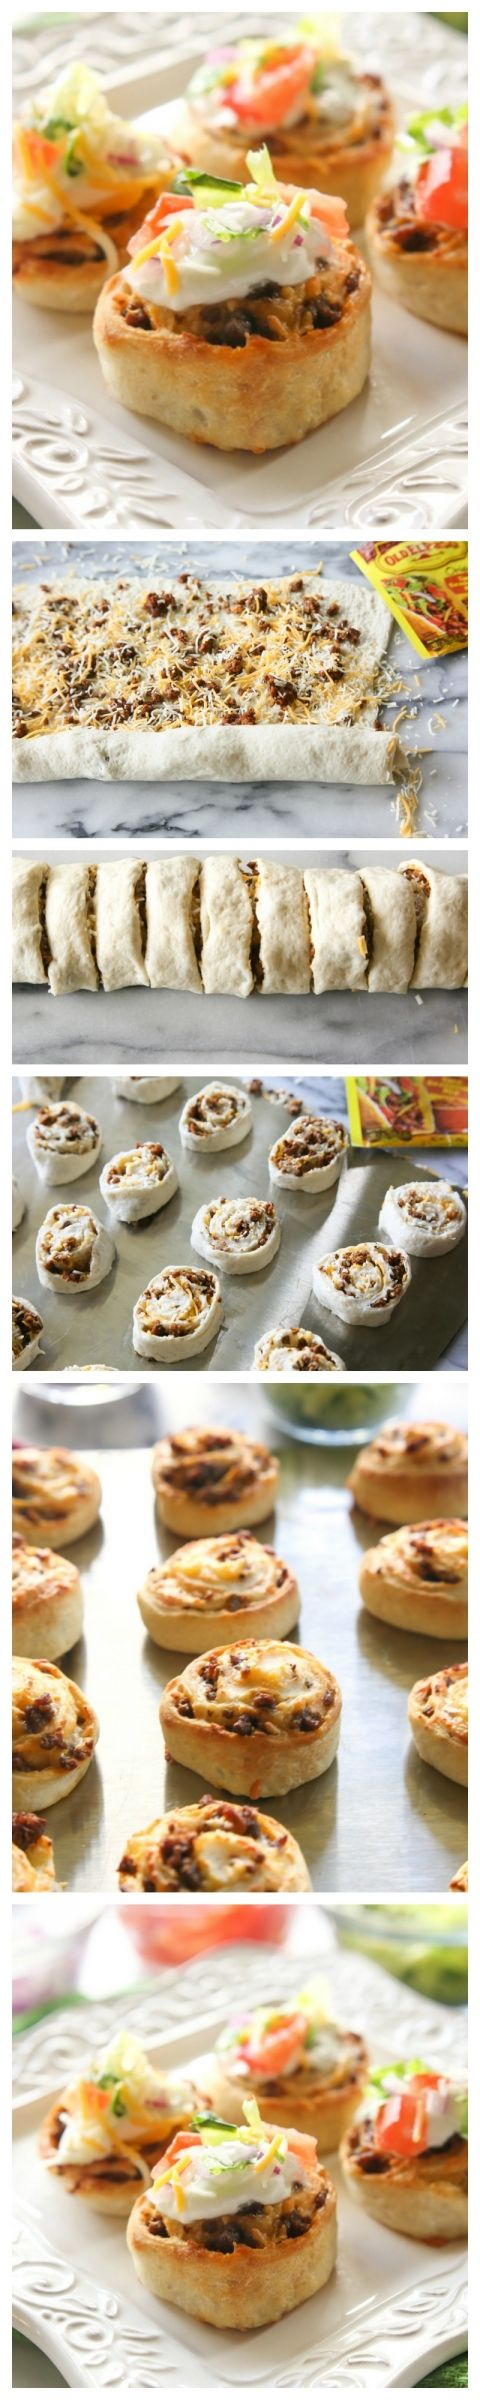 Taco Pizza Rolls - taco meat and cheese rolled up in pizza dough and topped with your favorite taco toppings. the-girl-who-ate-everthing.com